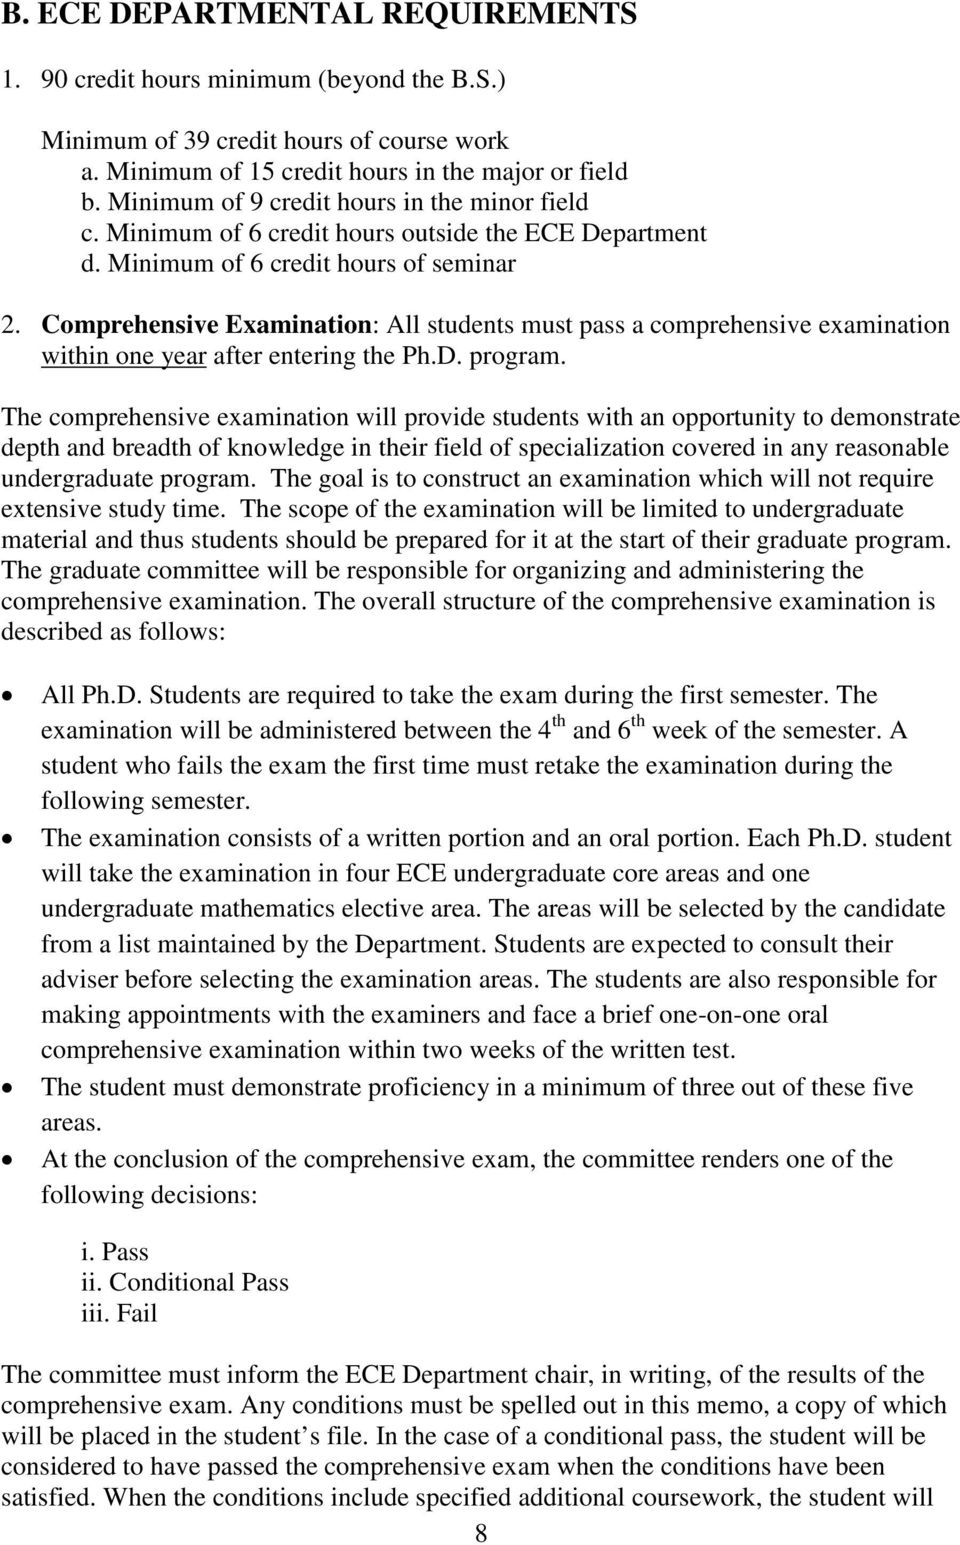 Comprehensive Examination: All students must pass a comprehensive examination within one year after entering the Ph.D. program.